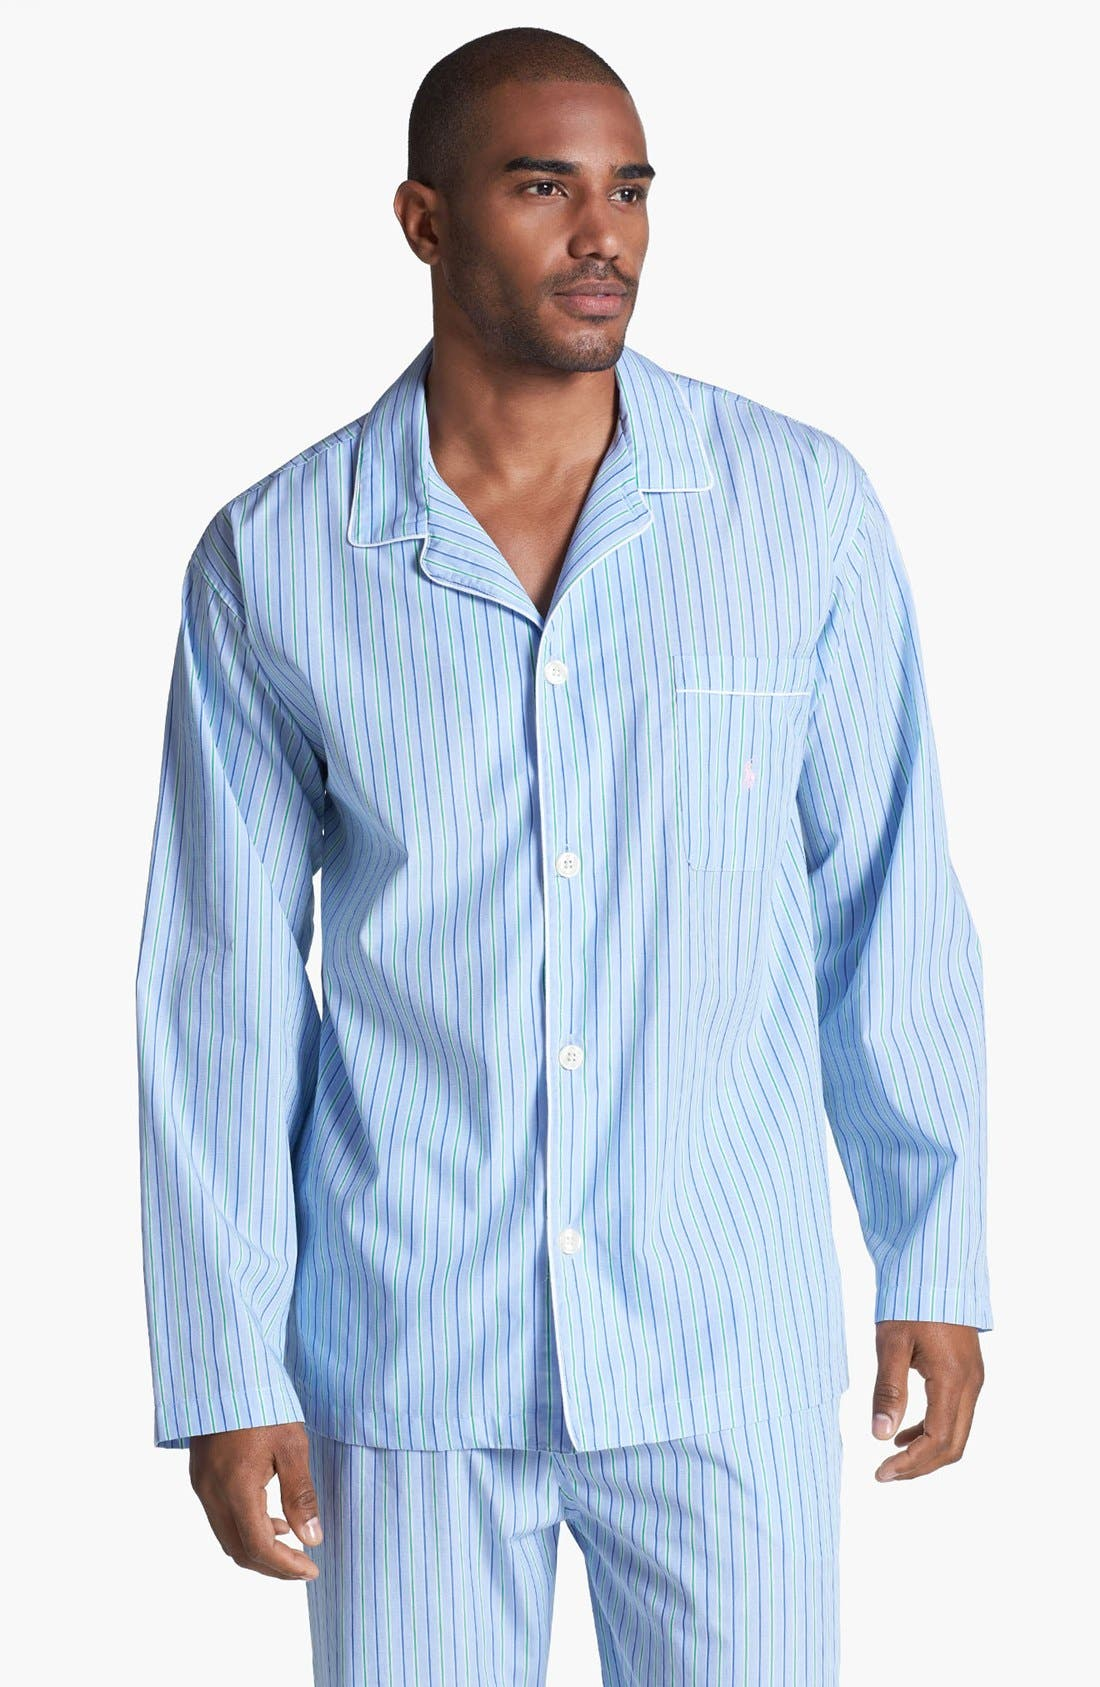 Alternate Image 1 Selected - Polo Ralph Lauren Cotton Pajama Top